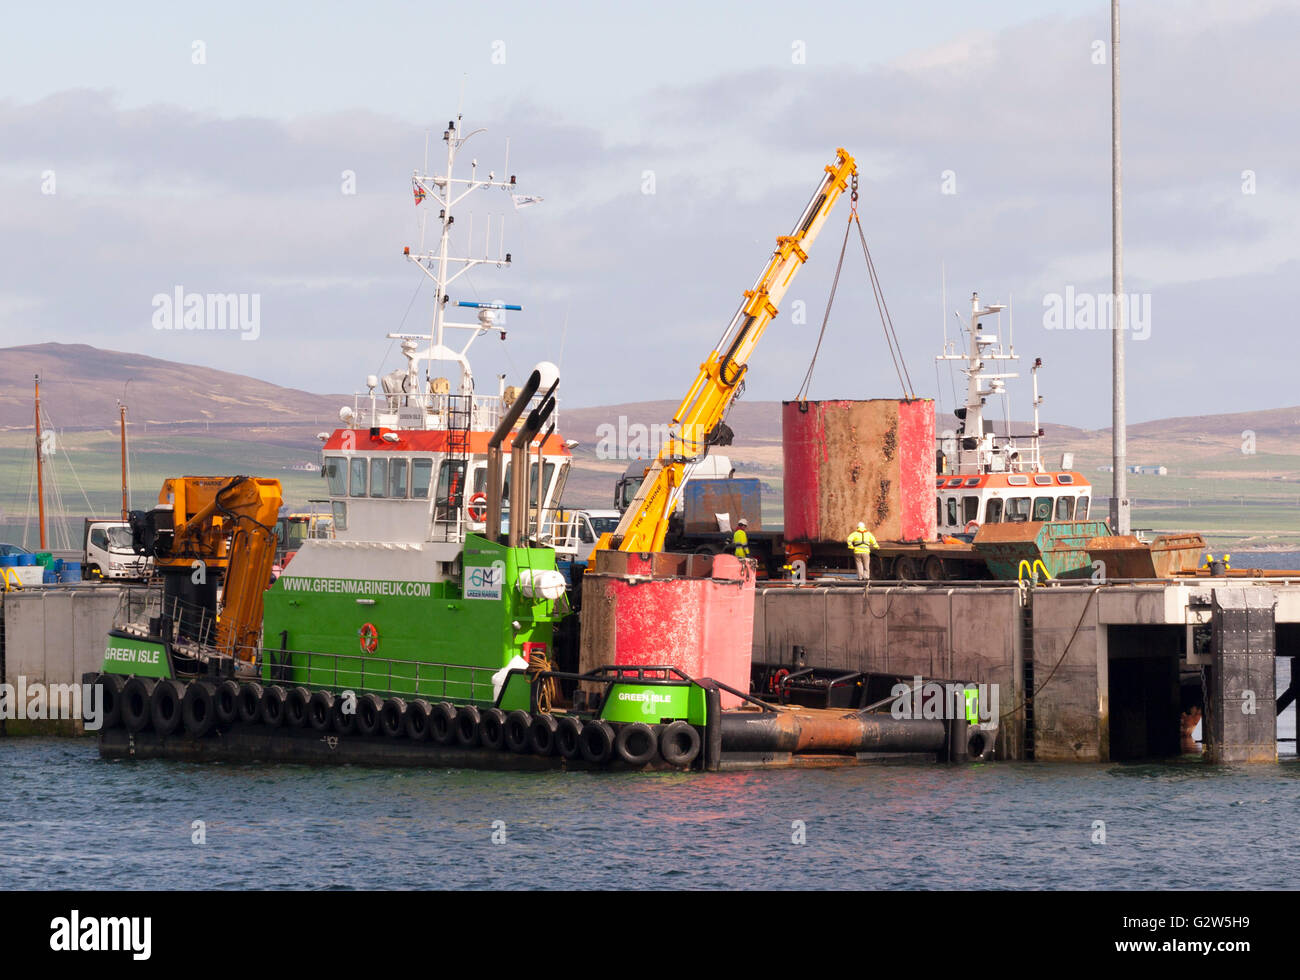 Sections of the decommissioned Pelamis P2 wave energy device being lifted onto pier for disposal, Stromness, Orkney, - Stock Image